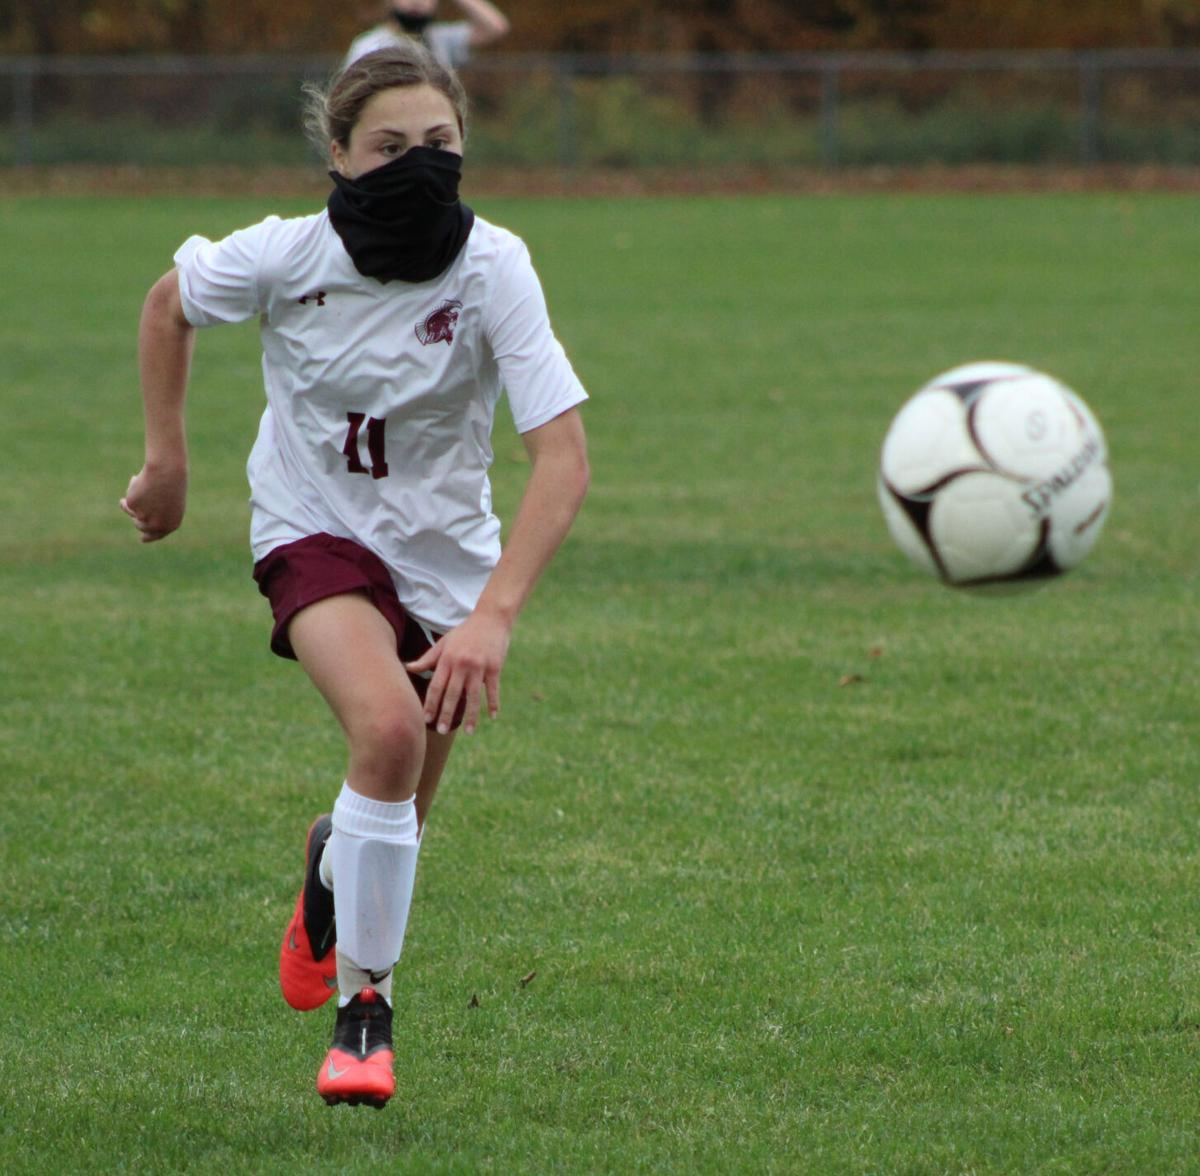 Undefeated Spartans score late to down Mustangs